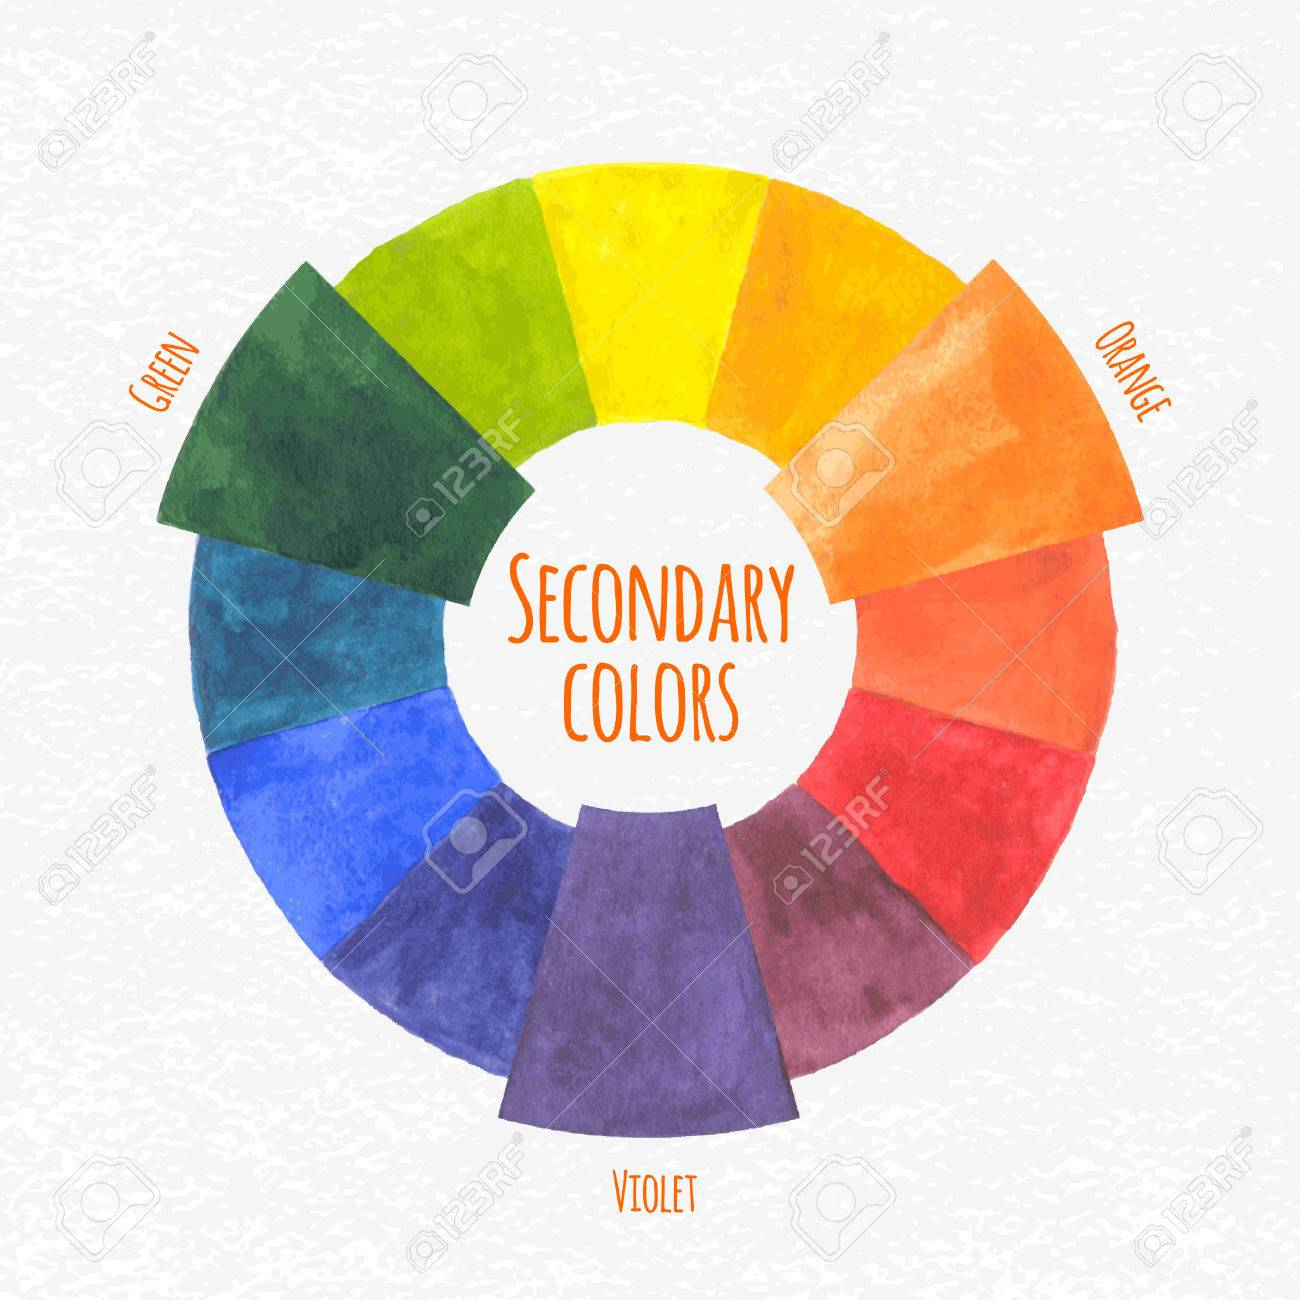 Handmade Color Wheel Secondary Colors Chart